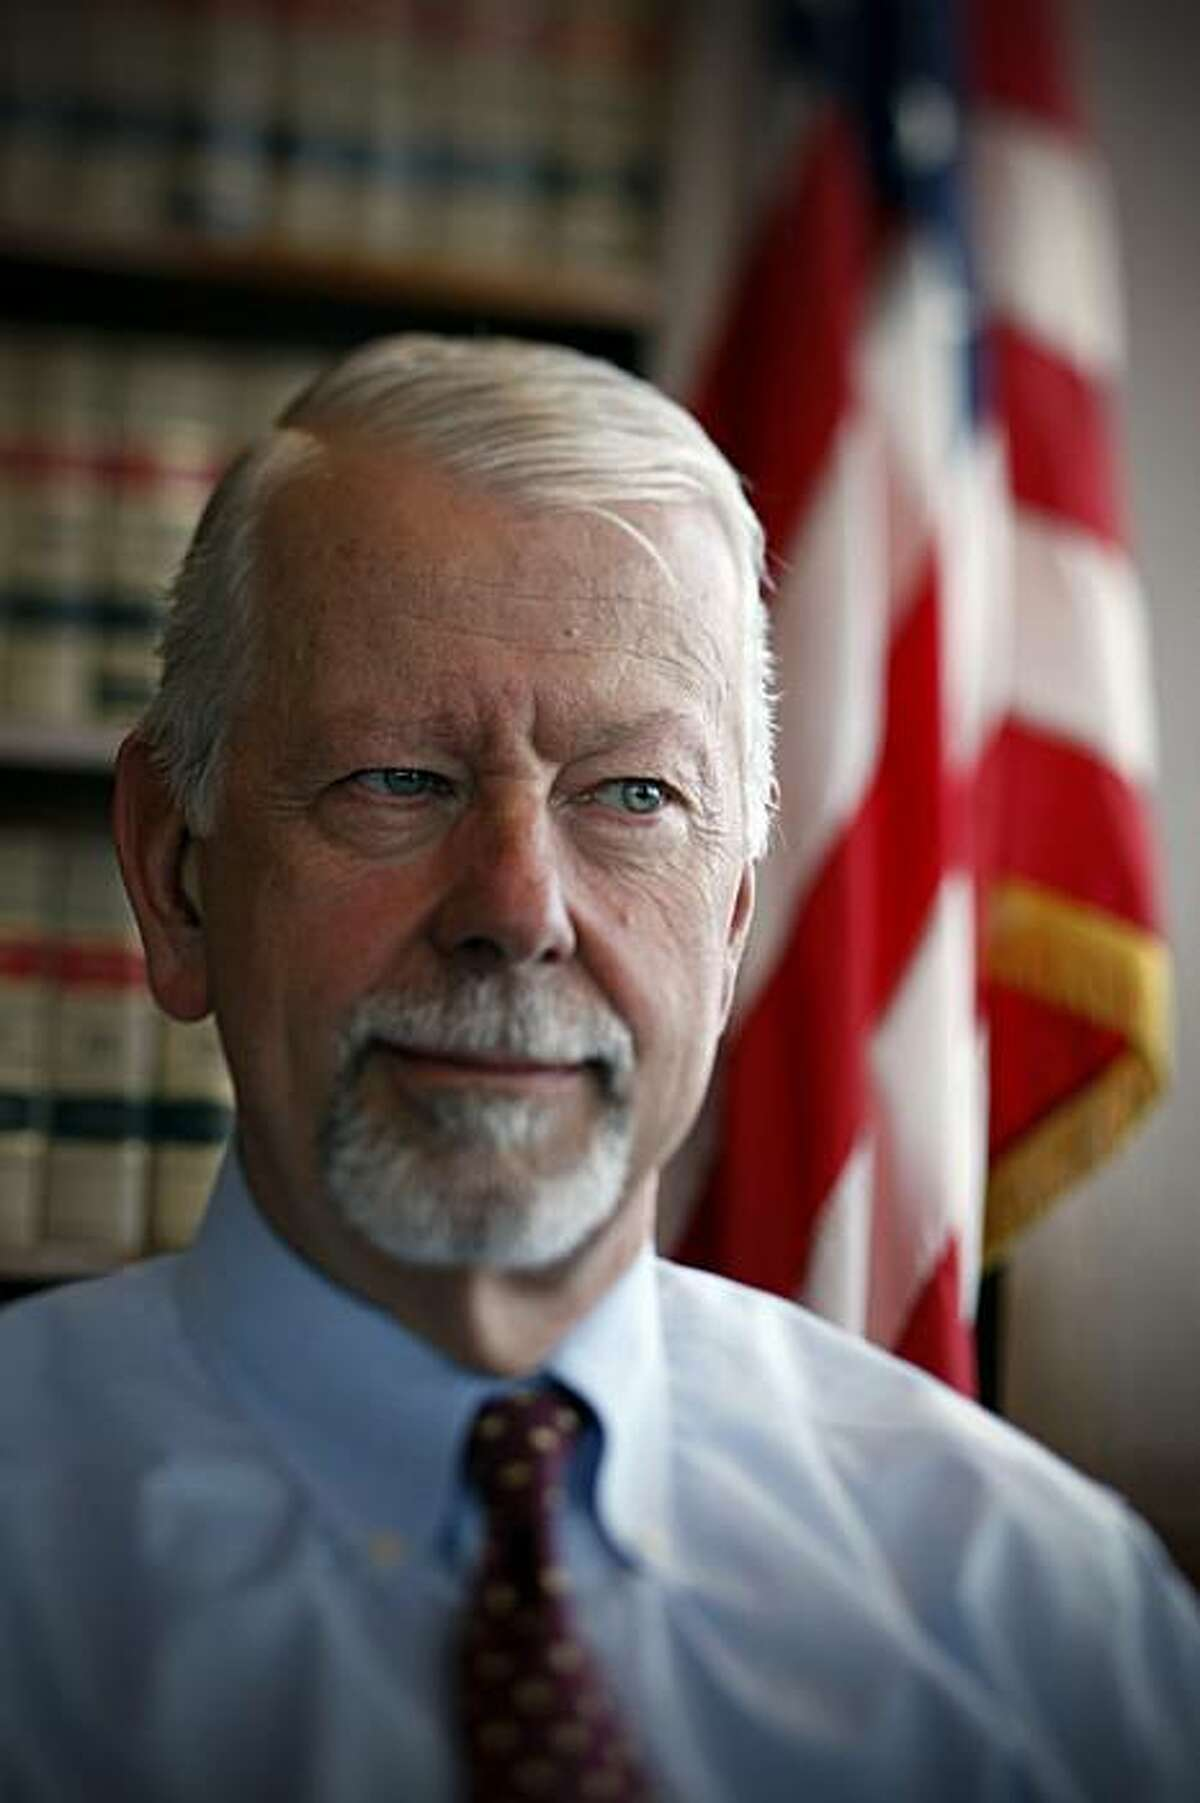 Judge Vaughn R. Walker is seen in his chambers at the Phillip Burton Federal Building in San Francisco, Calif., on Wednesday, July 8, 2009. Walker is the U.S. Chief Judge for the Northern California district.